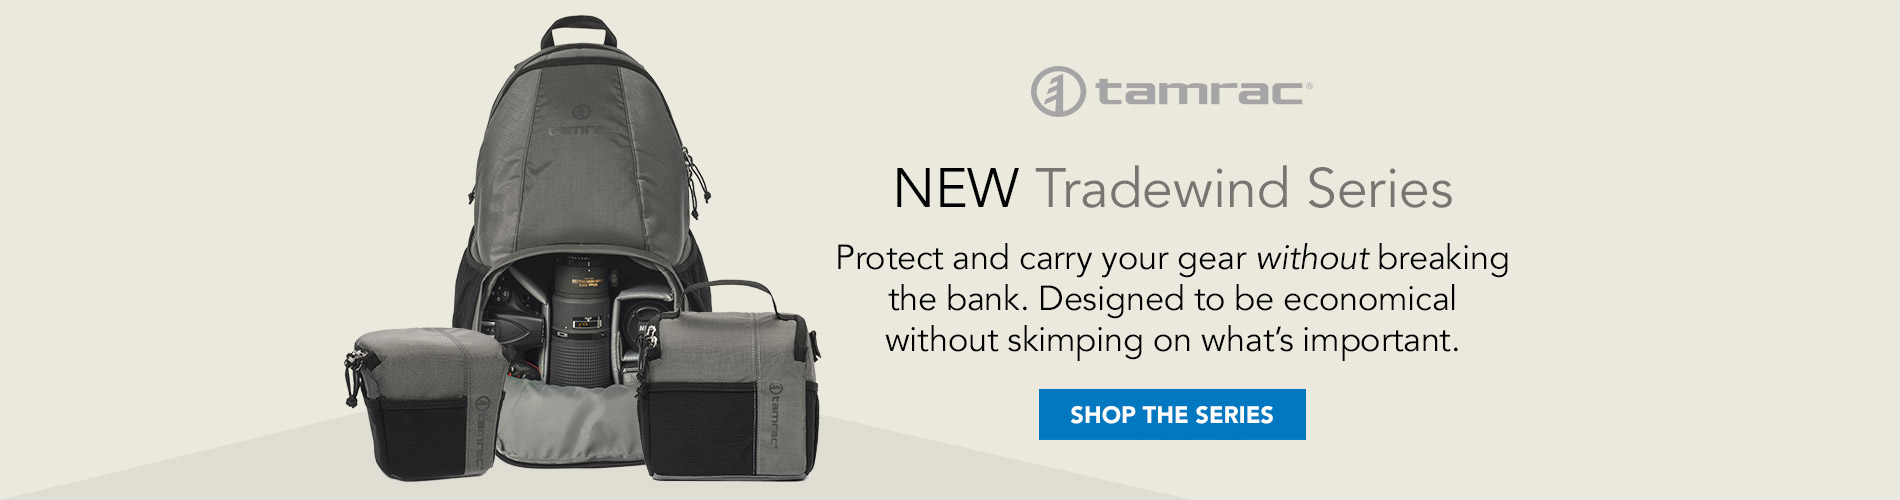 Tamrac   NEW Tradewind Series: Protect and carry your gear without breaking the bank. Designed to be economical without skimping on what's important. Shop the Series >